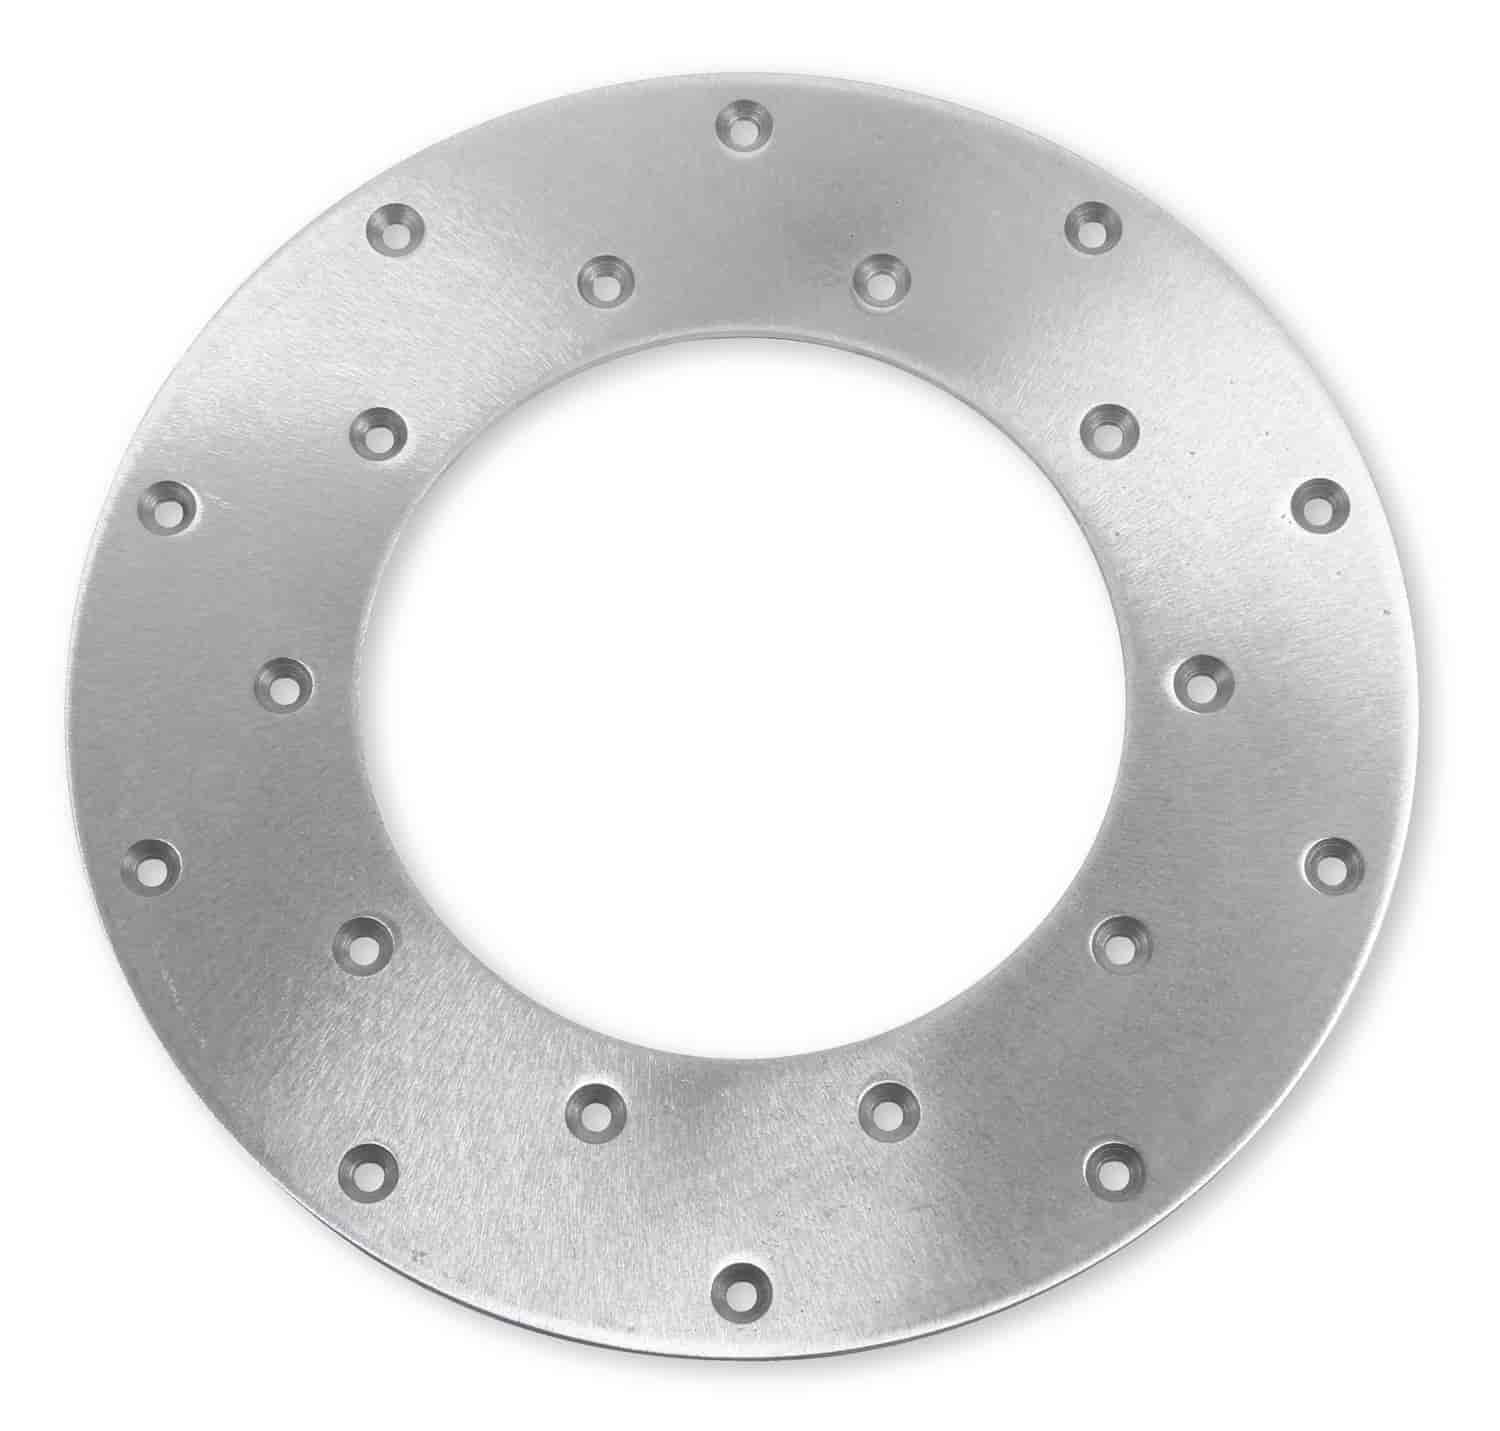 Hays 76-200 - Hays Flywheel Insert